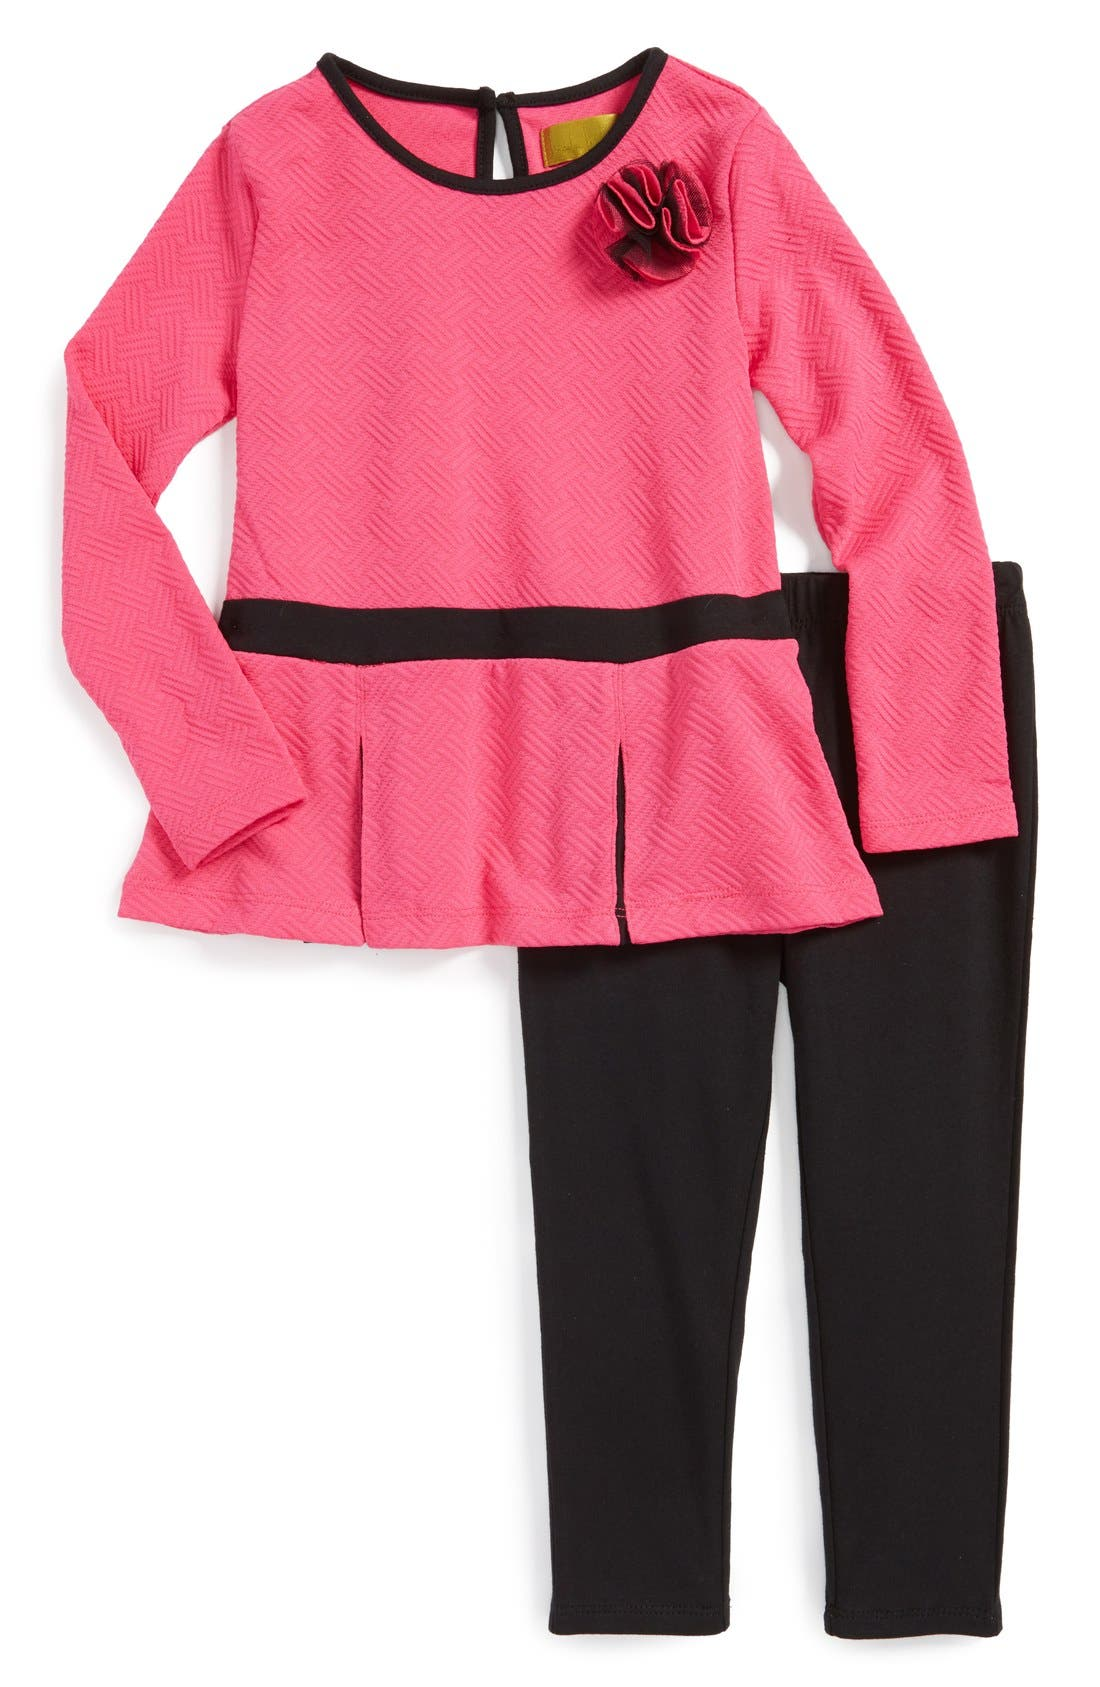 Alternate Image 1 Selected - Nicole Miller Colorblock Tunic & Leggings (Little Girls) (Online Only)